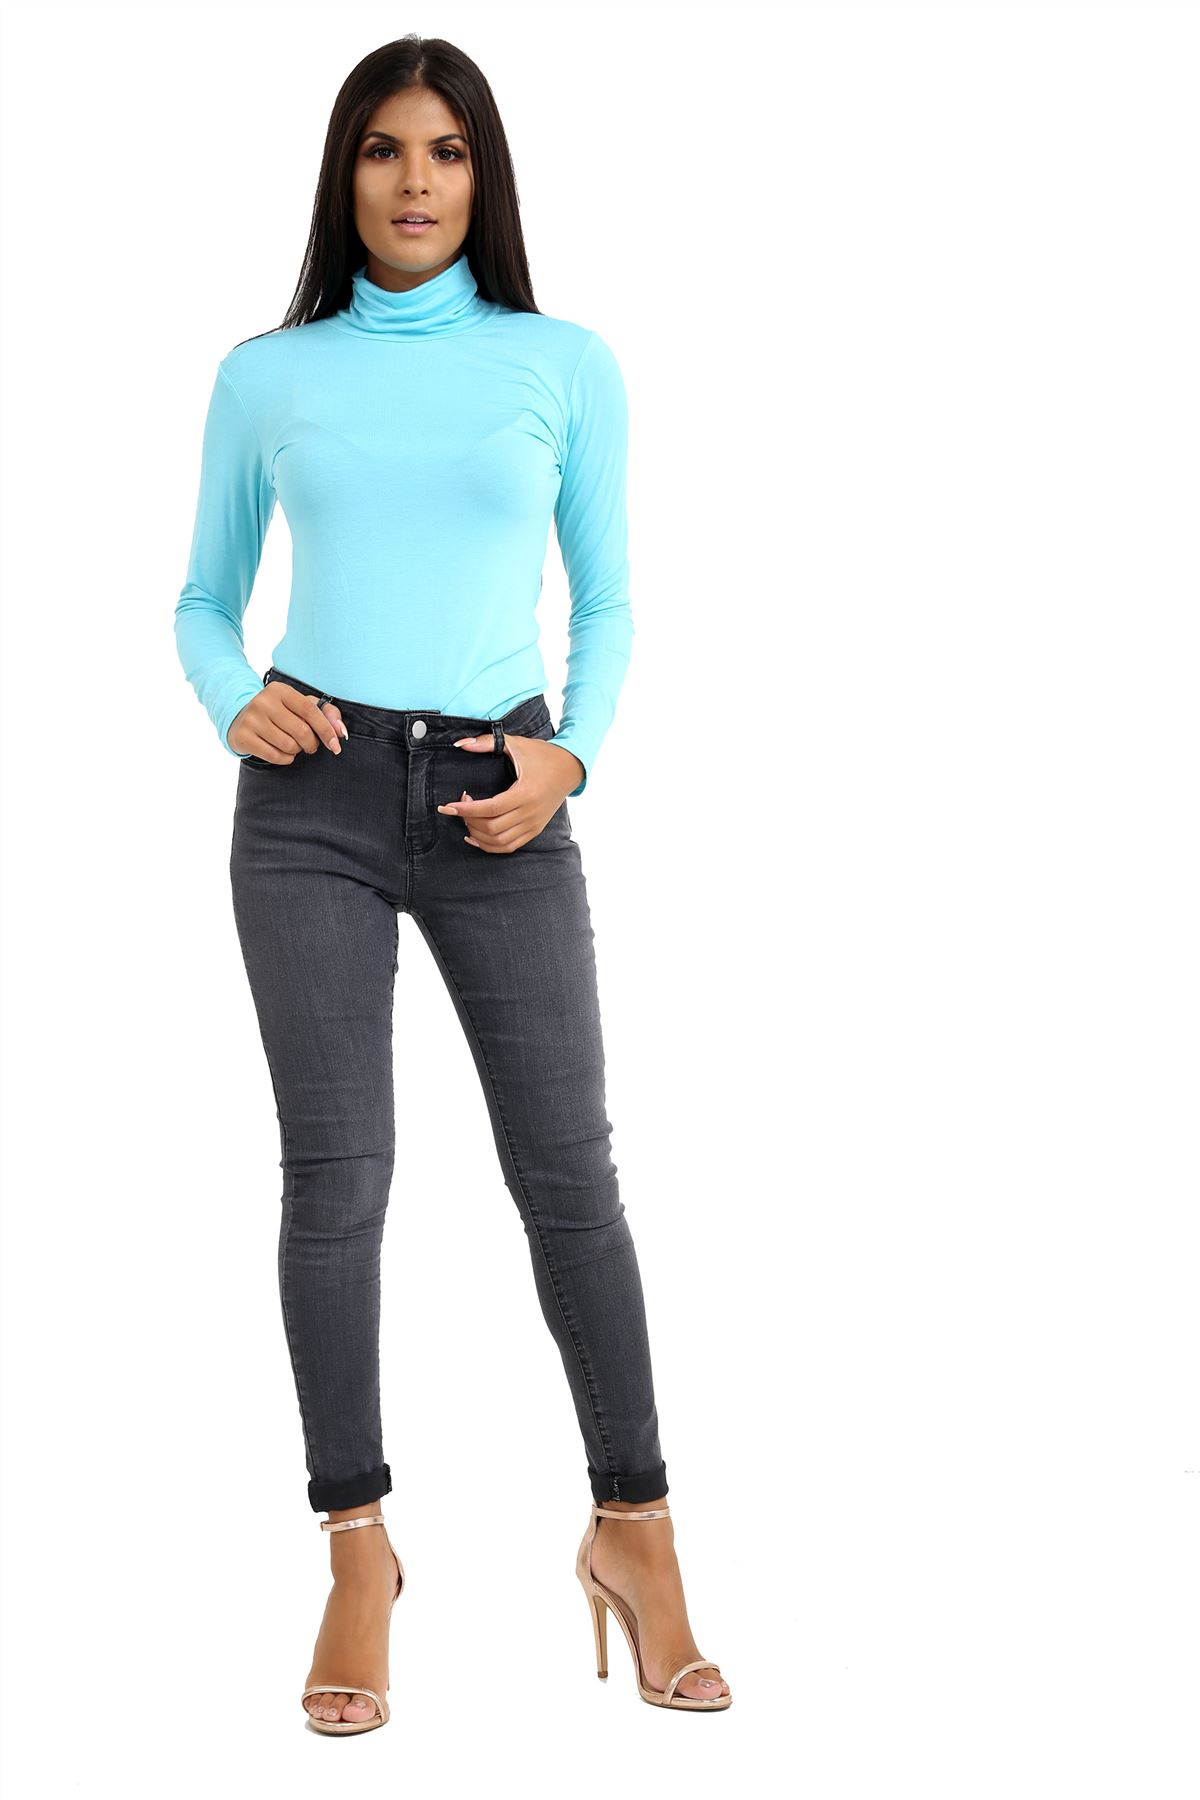 New-Ladies-Long-Sleeve-Plain-Turtle-Polo-Roll-Neck-Stretch-Jumper-T-Shirt-TeeTop thumbnail 63